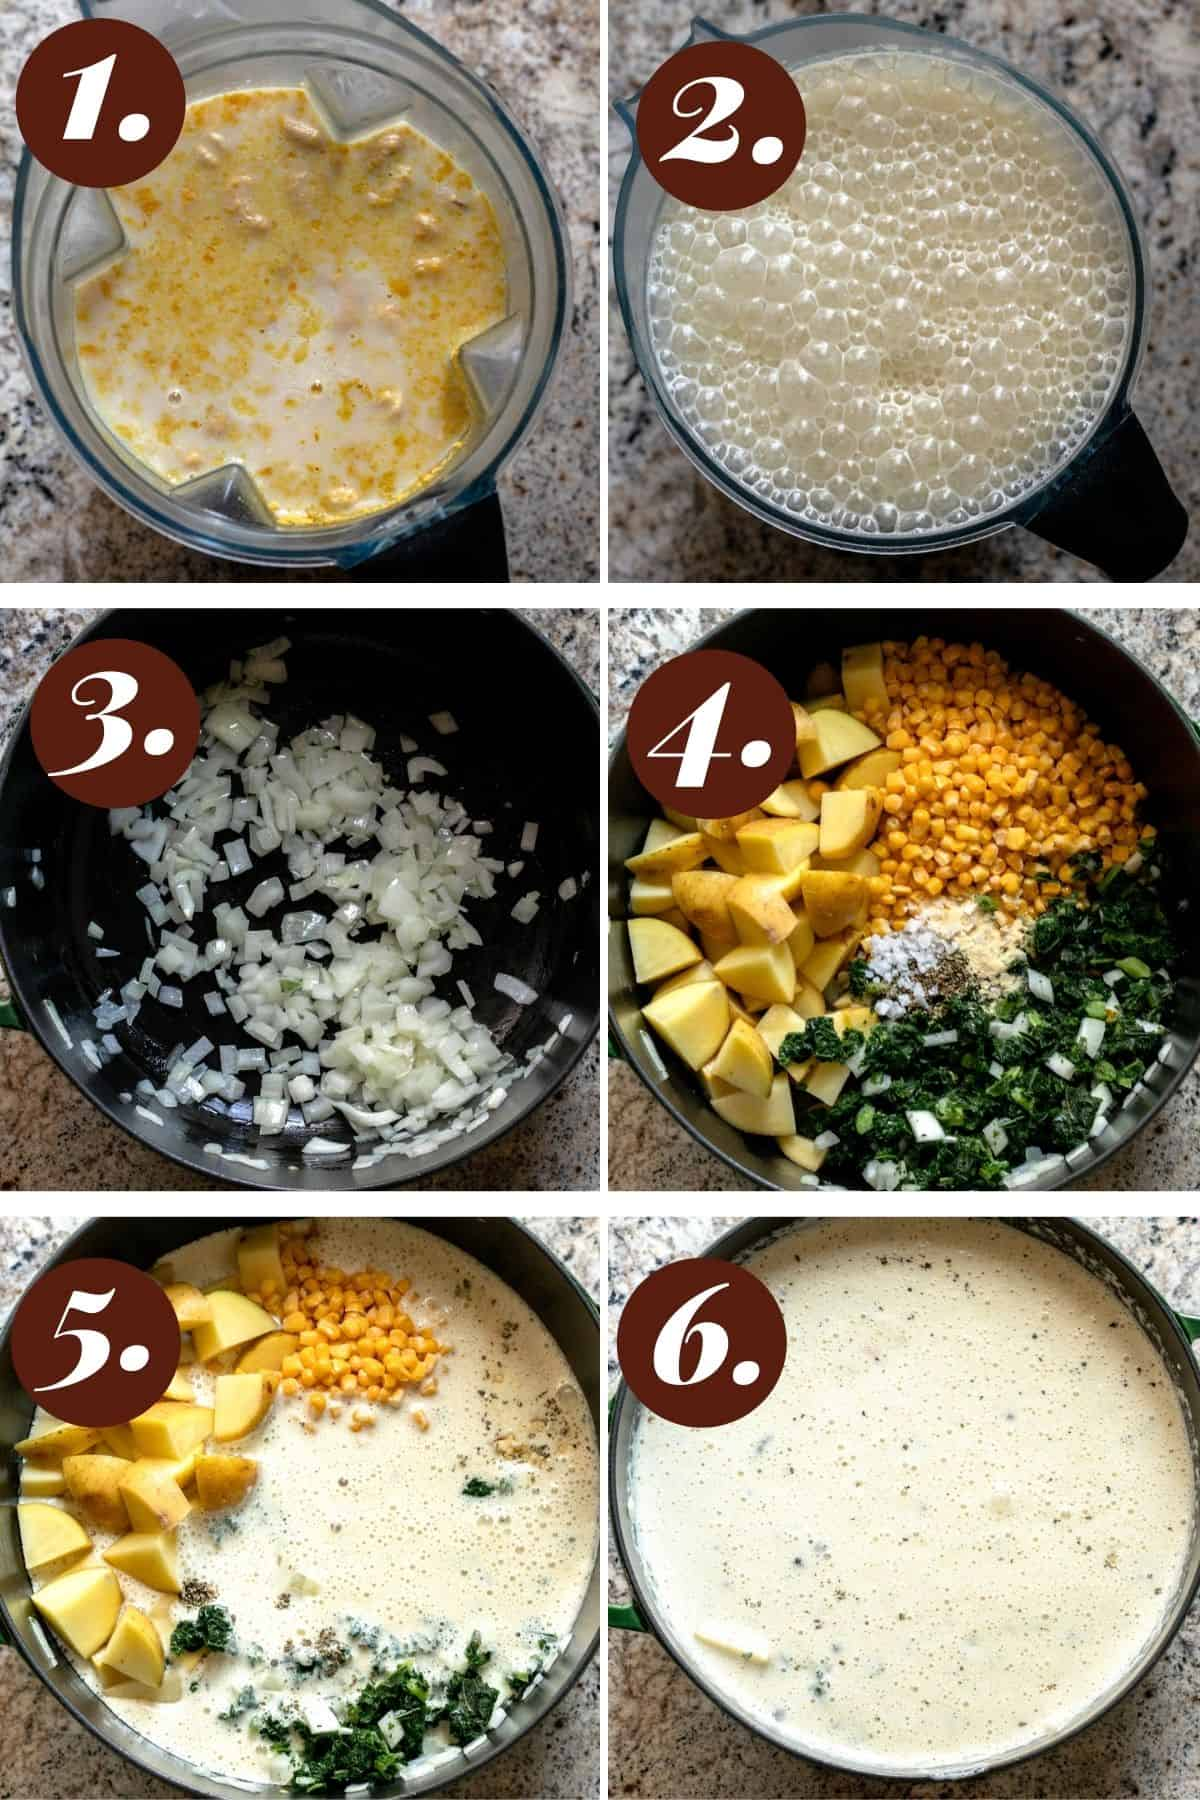 Step by step process of how to make chowder.